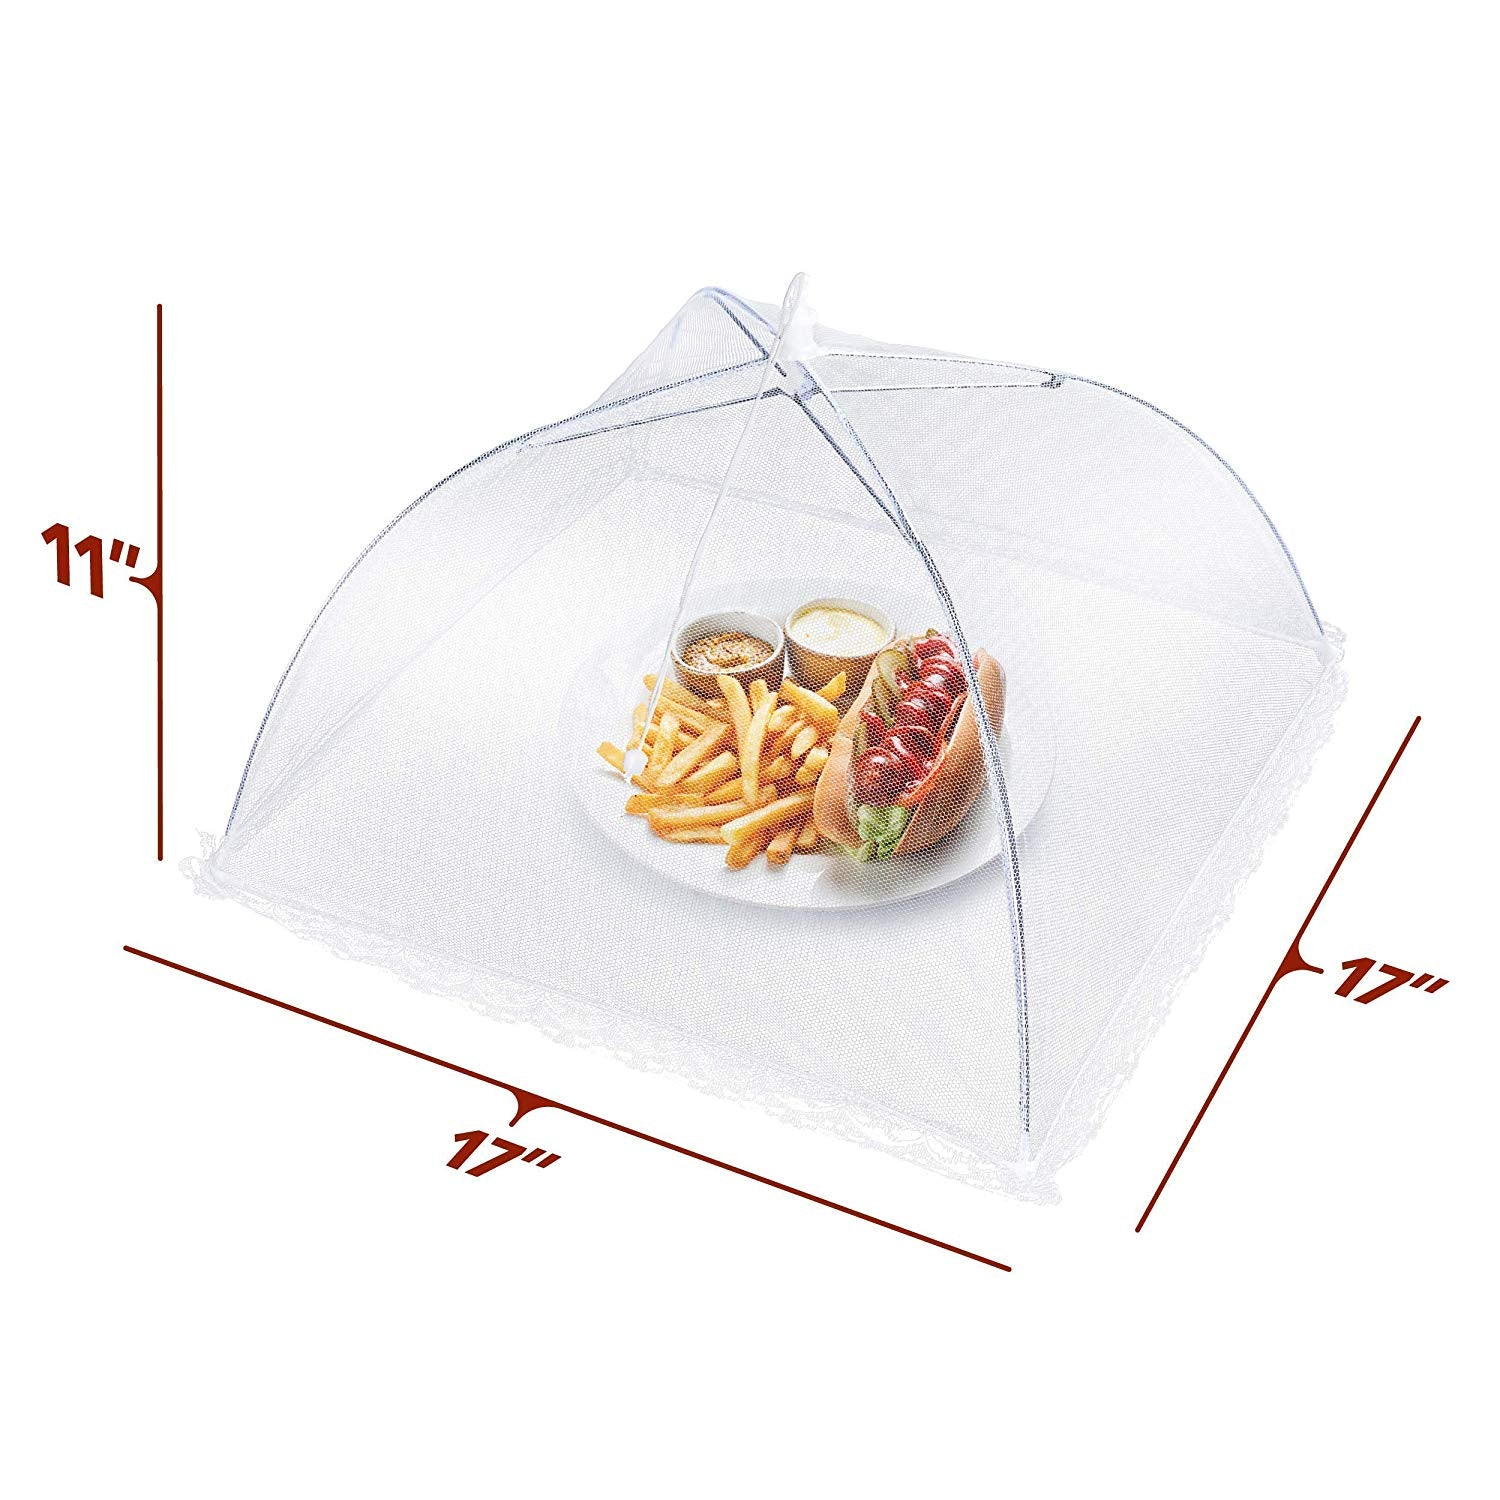 Pop-Up Food Tents - Keep Out Flies, Bugs, Mosquitoes - Set of 4